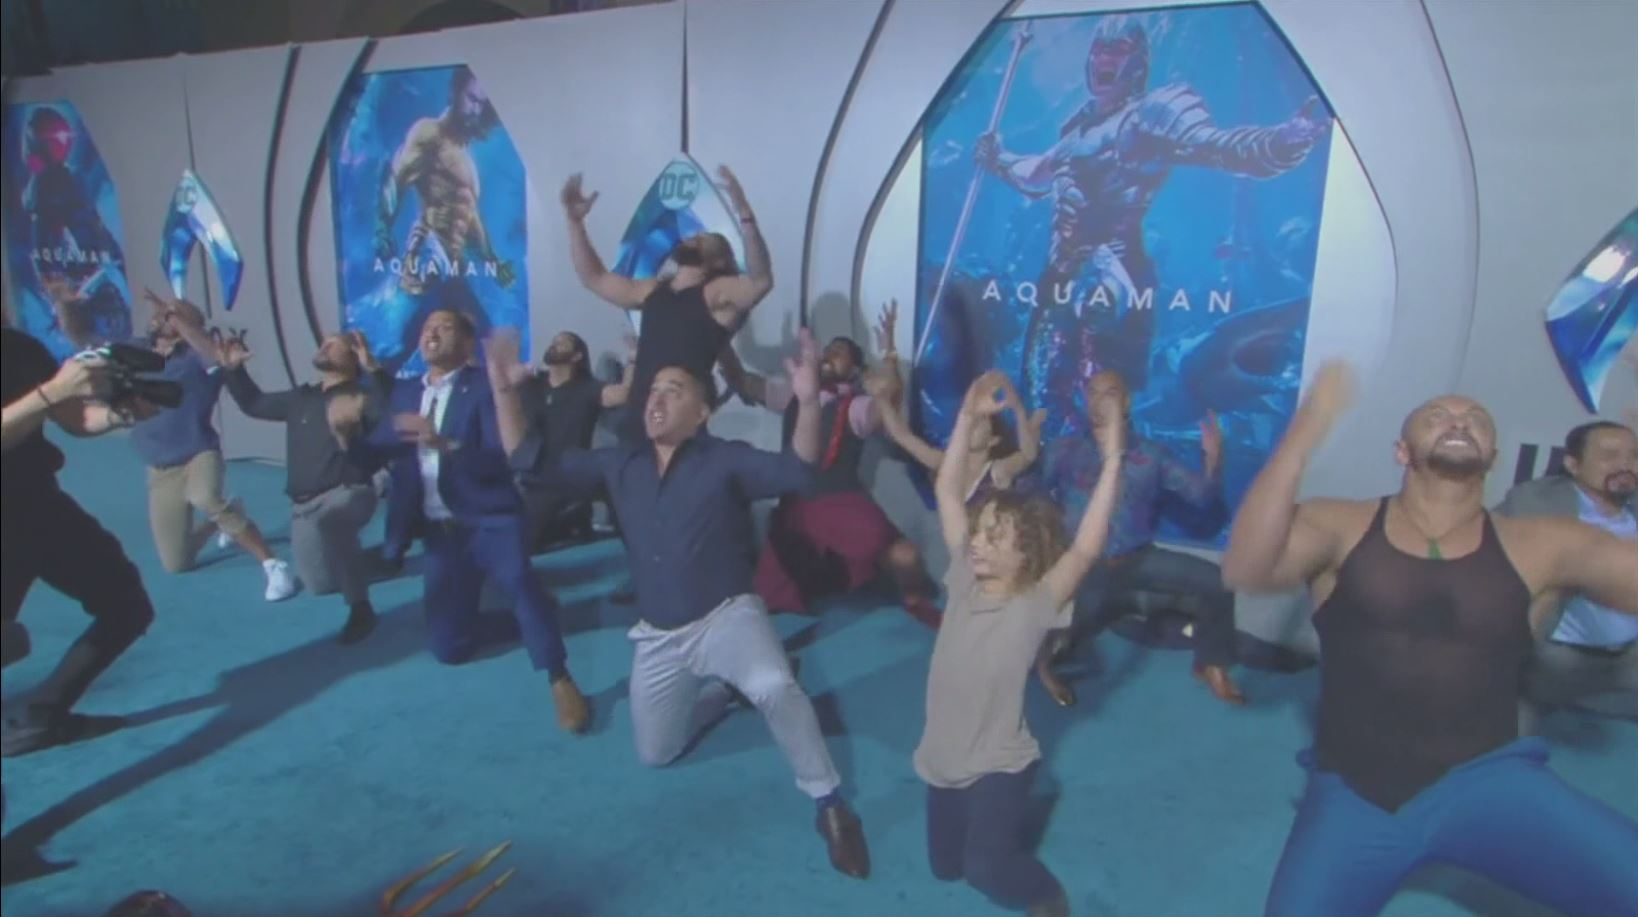 Aquaman star Jason Momoa performs Haka on Hollywood red carpet